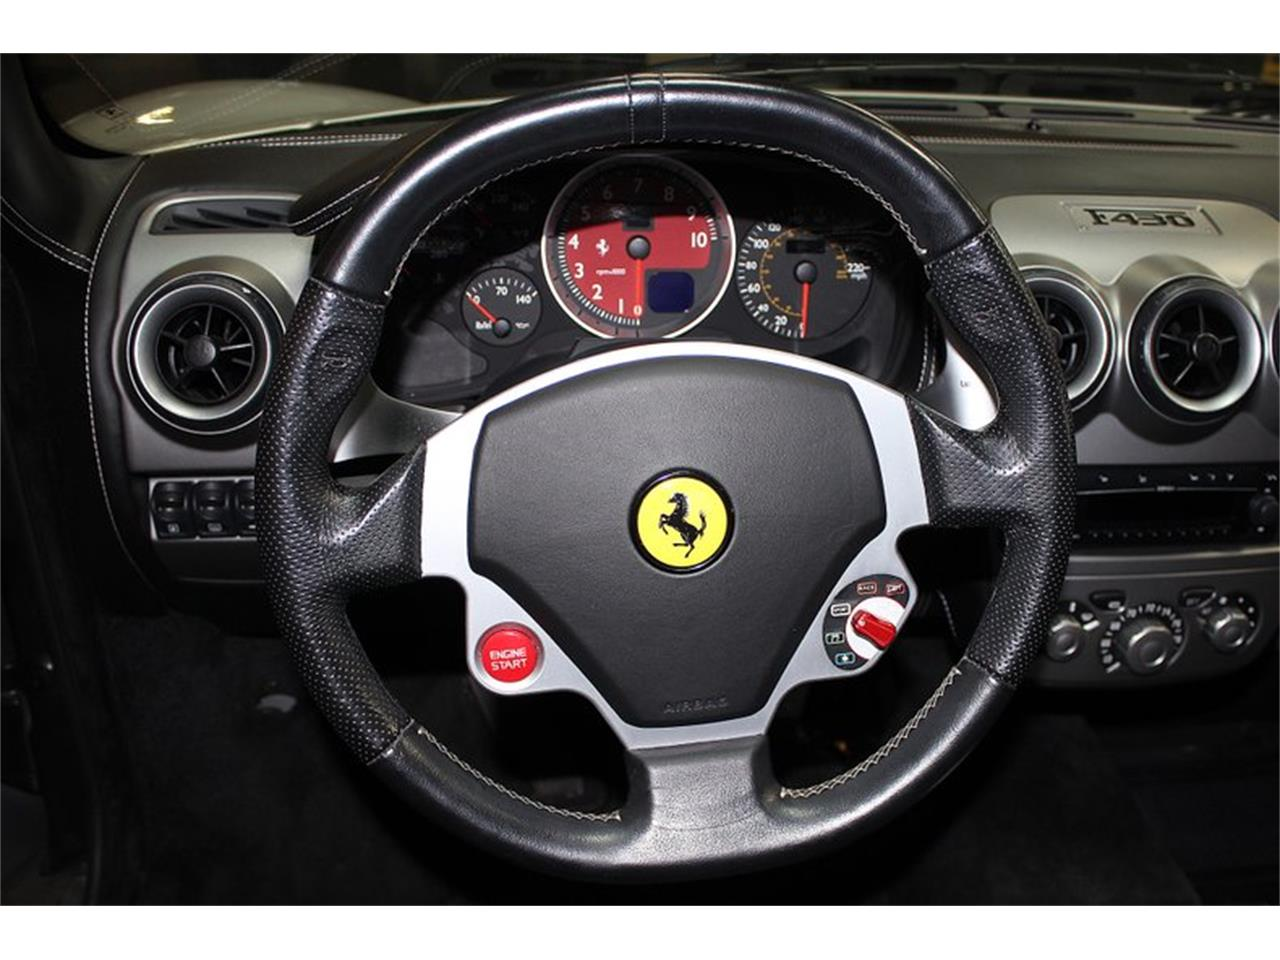 2005 Ferrari F430 for sale in San Carlos, CA – photo 31